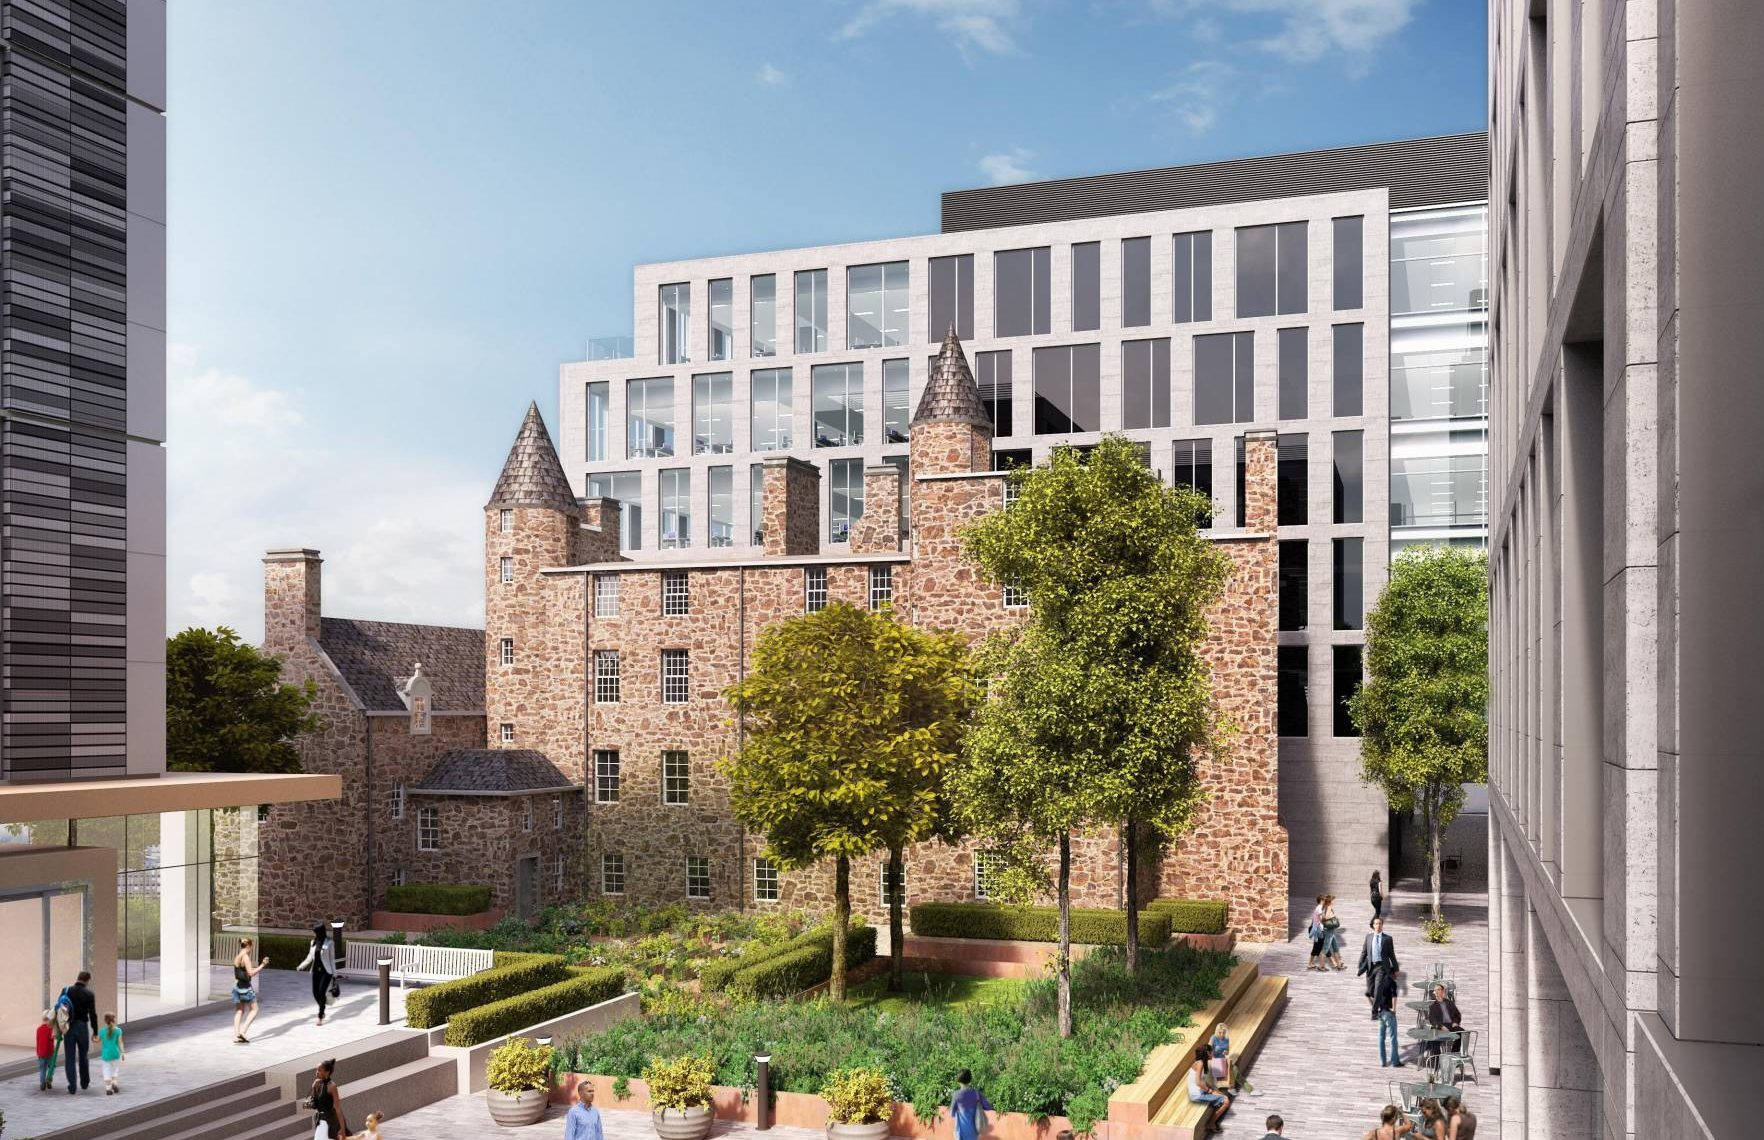 How Provost Skene house will look.